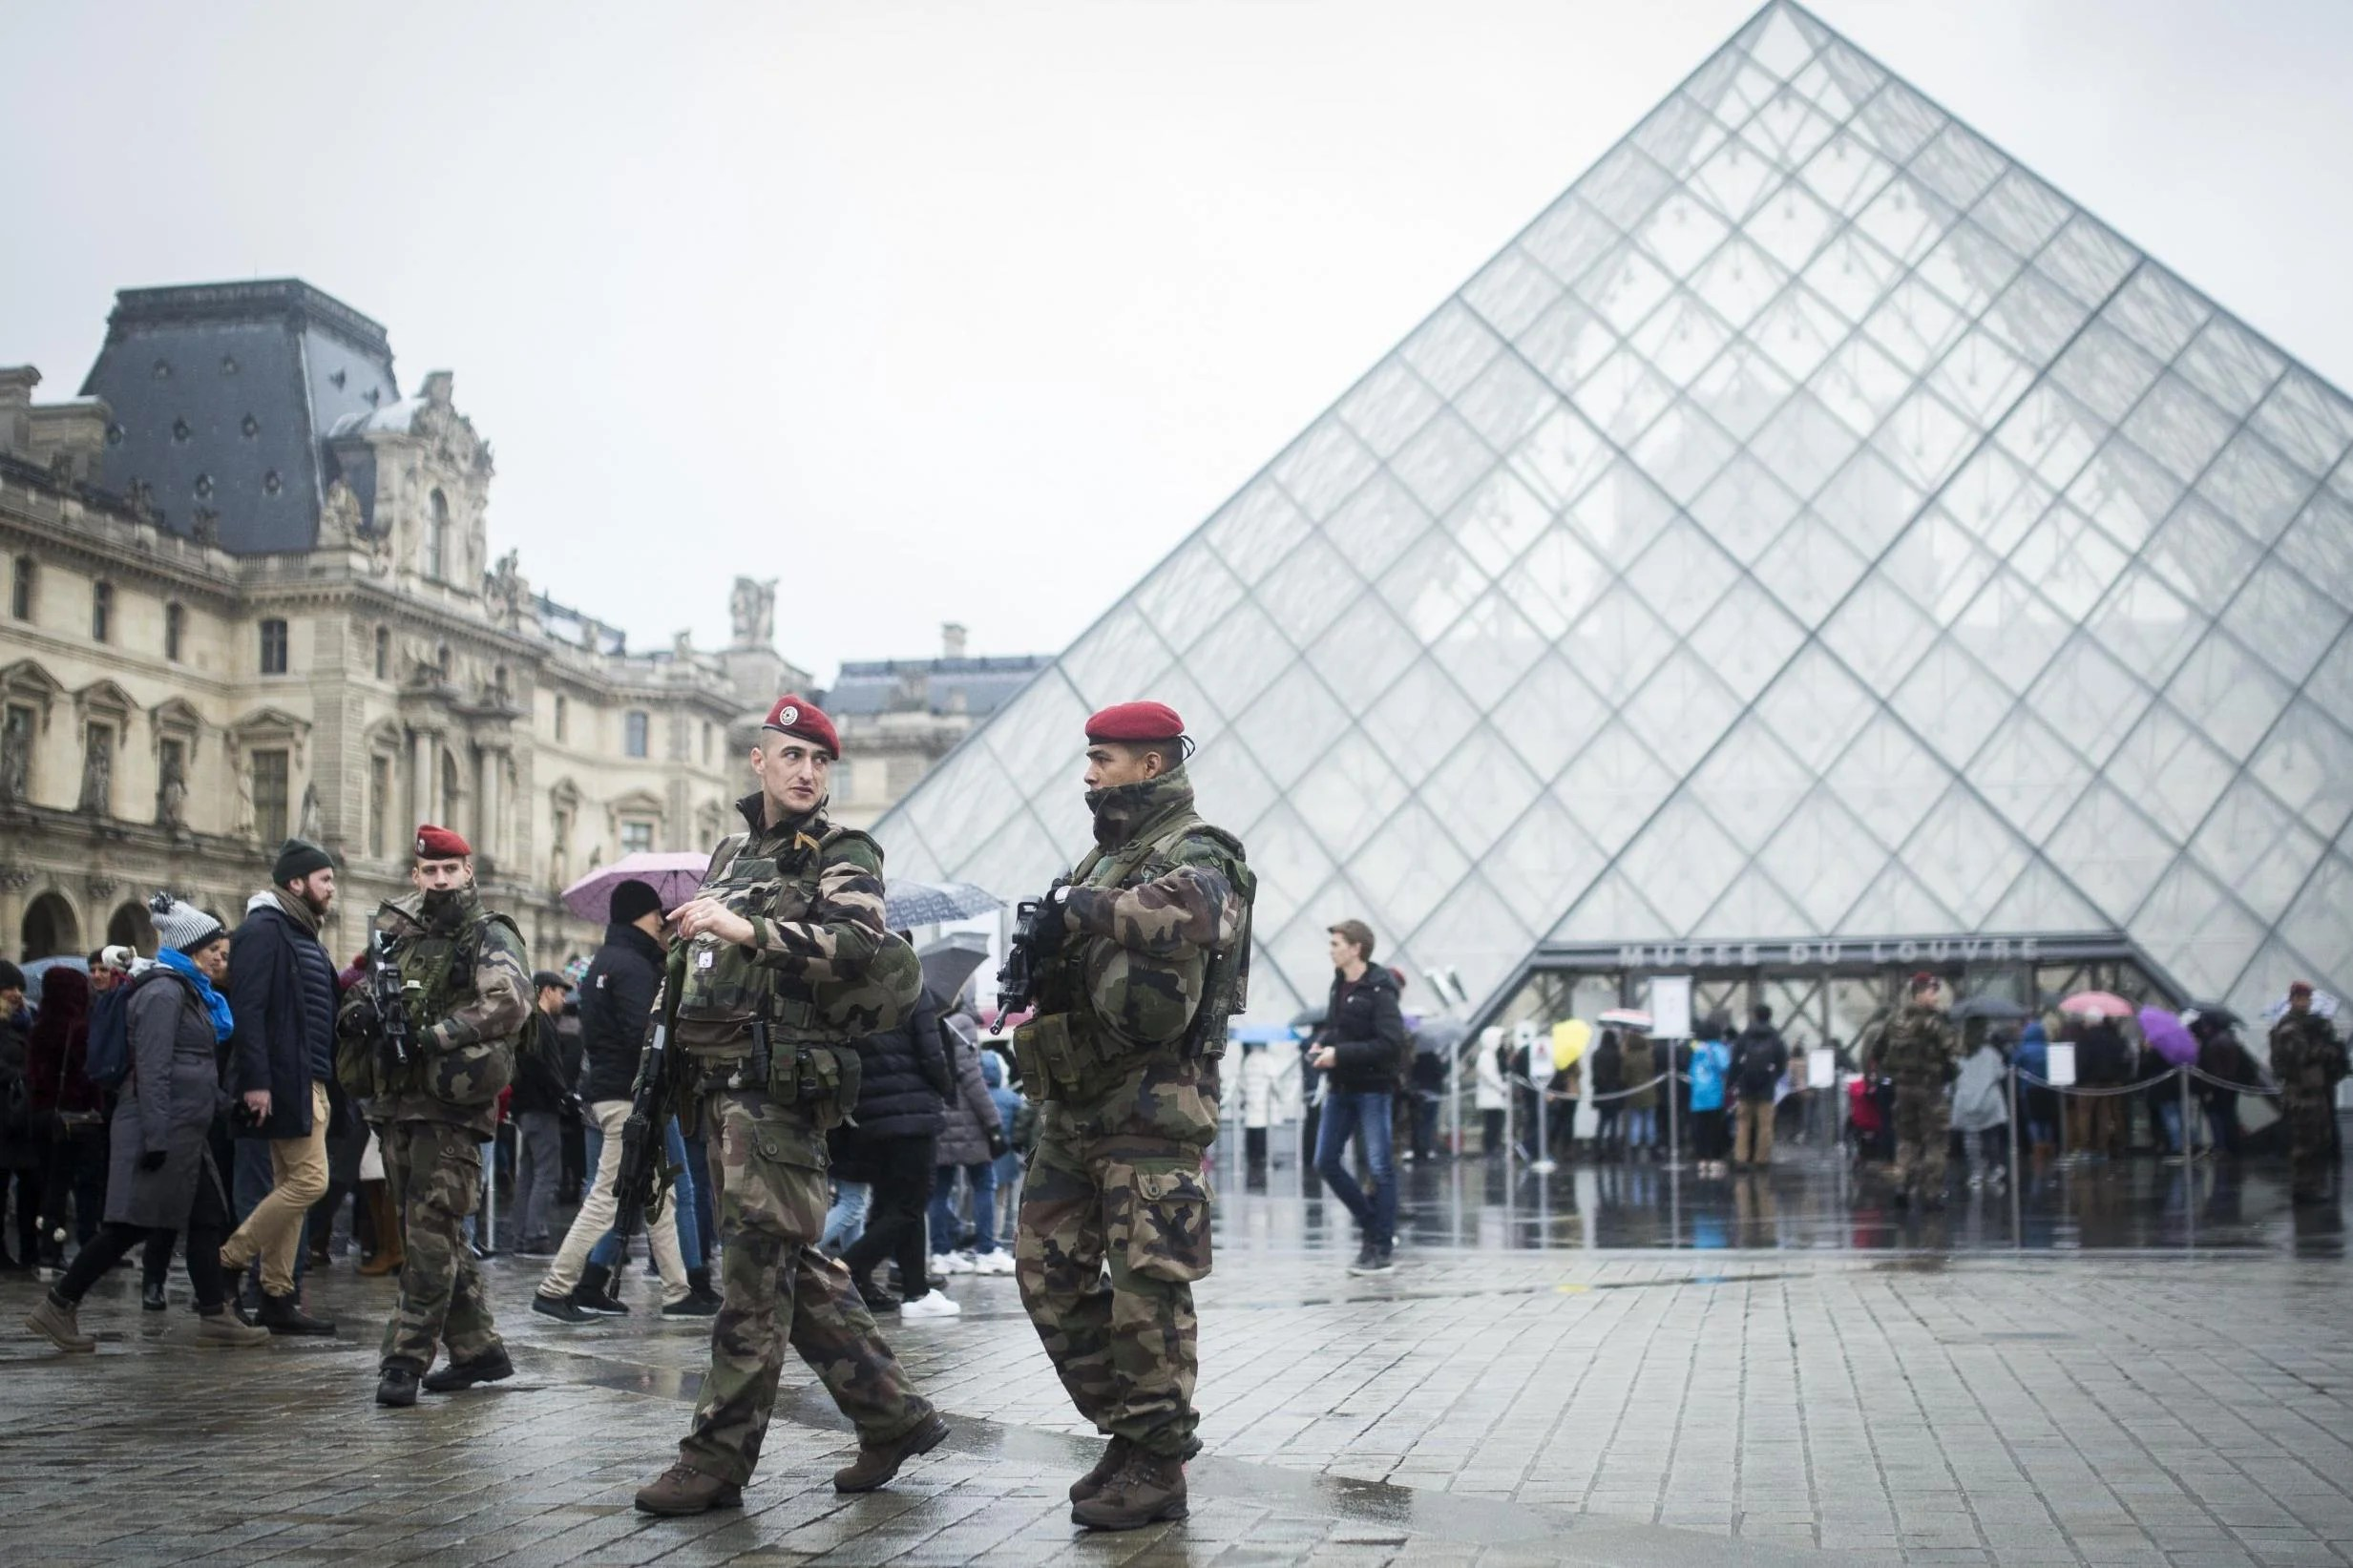 Louvre Attacker Who Pledged Support To Isis Minutes Before Assault Named London Evening Standard